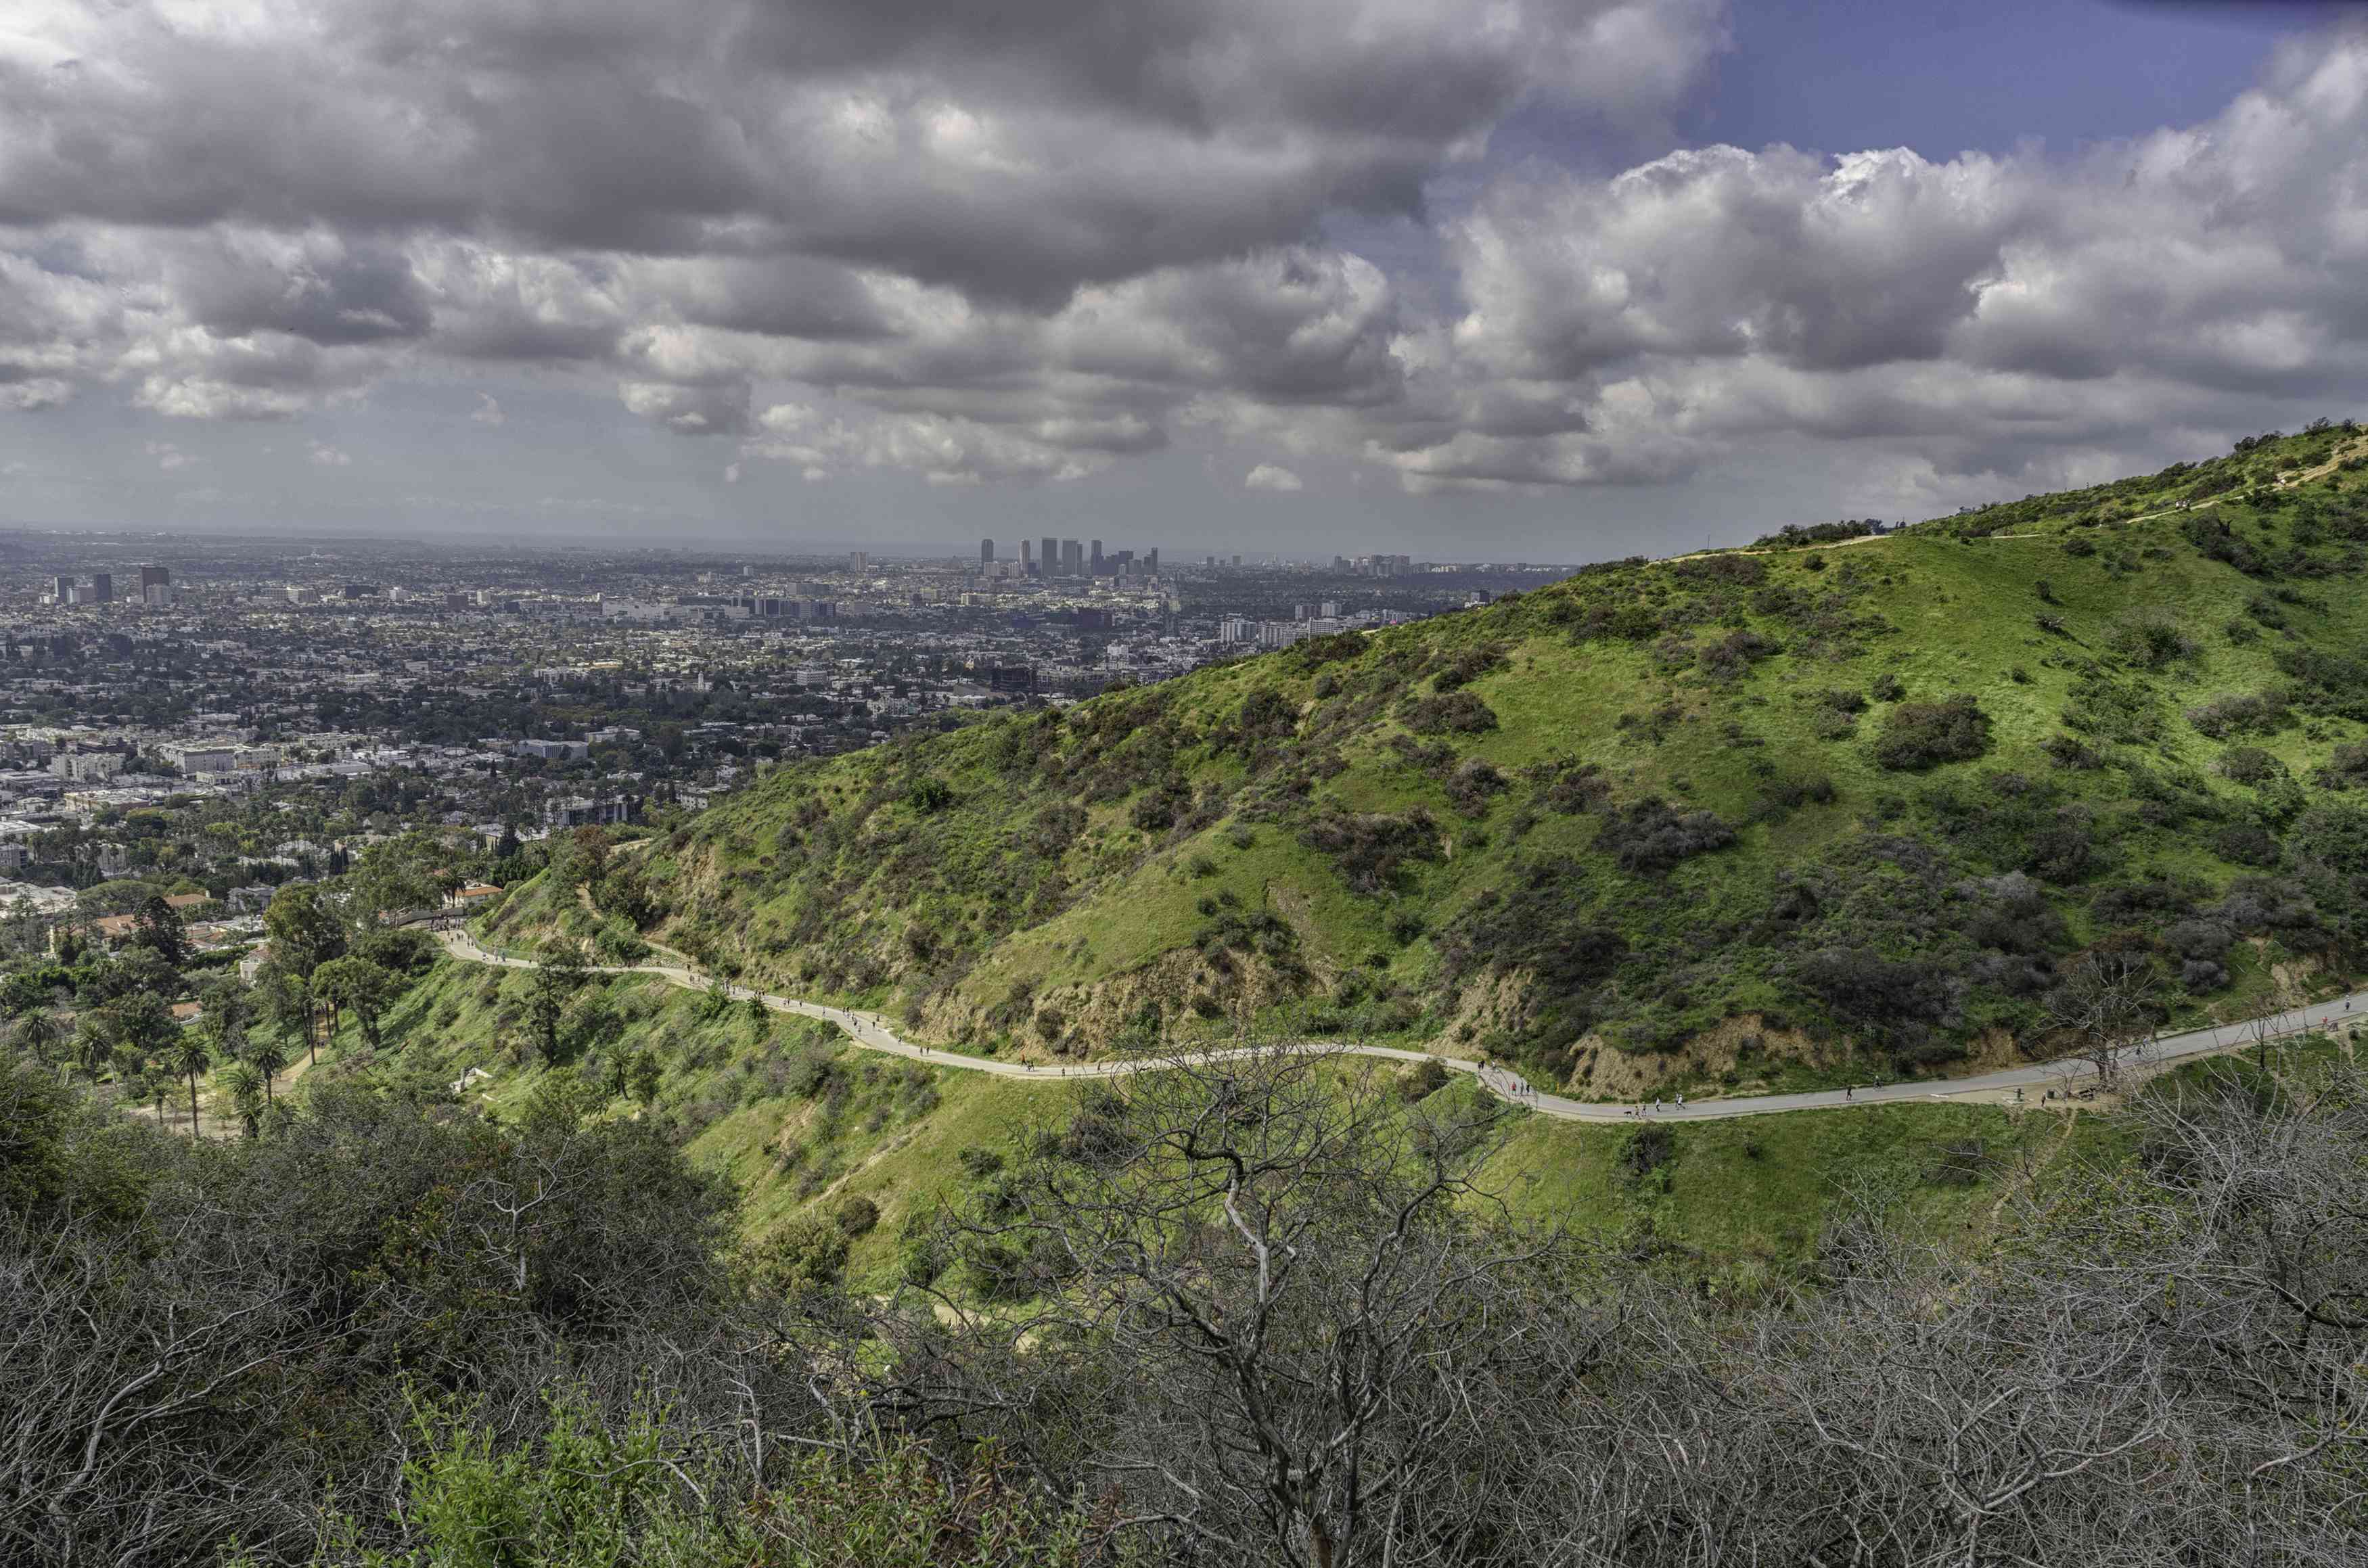 Hiking trails in Runyon Canyon, Los Angeles, CA.